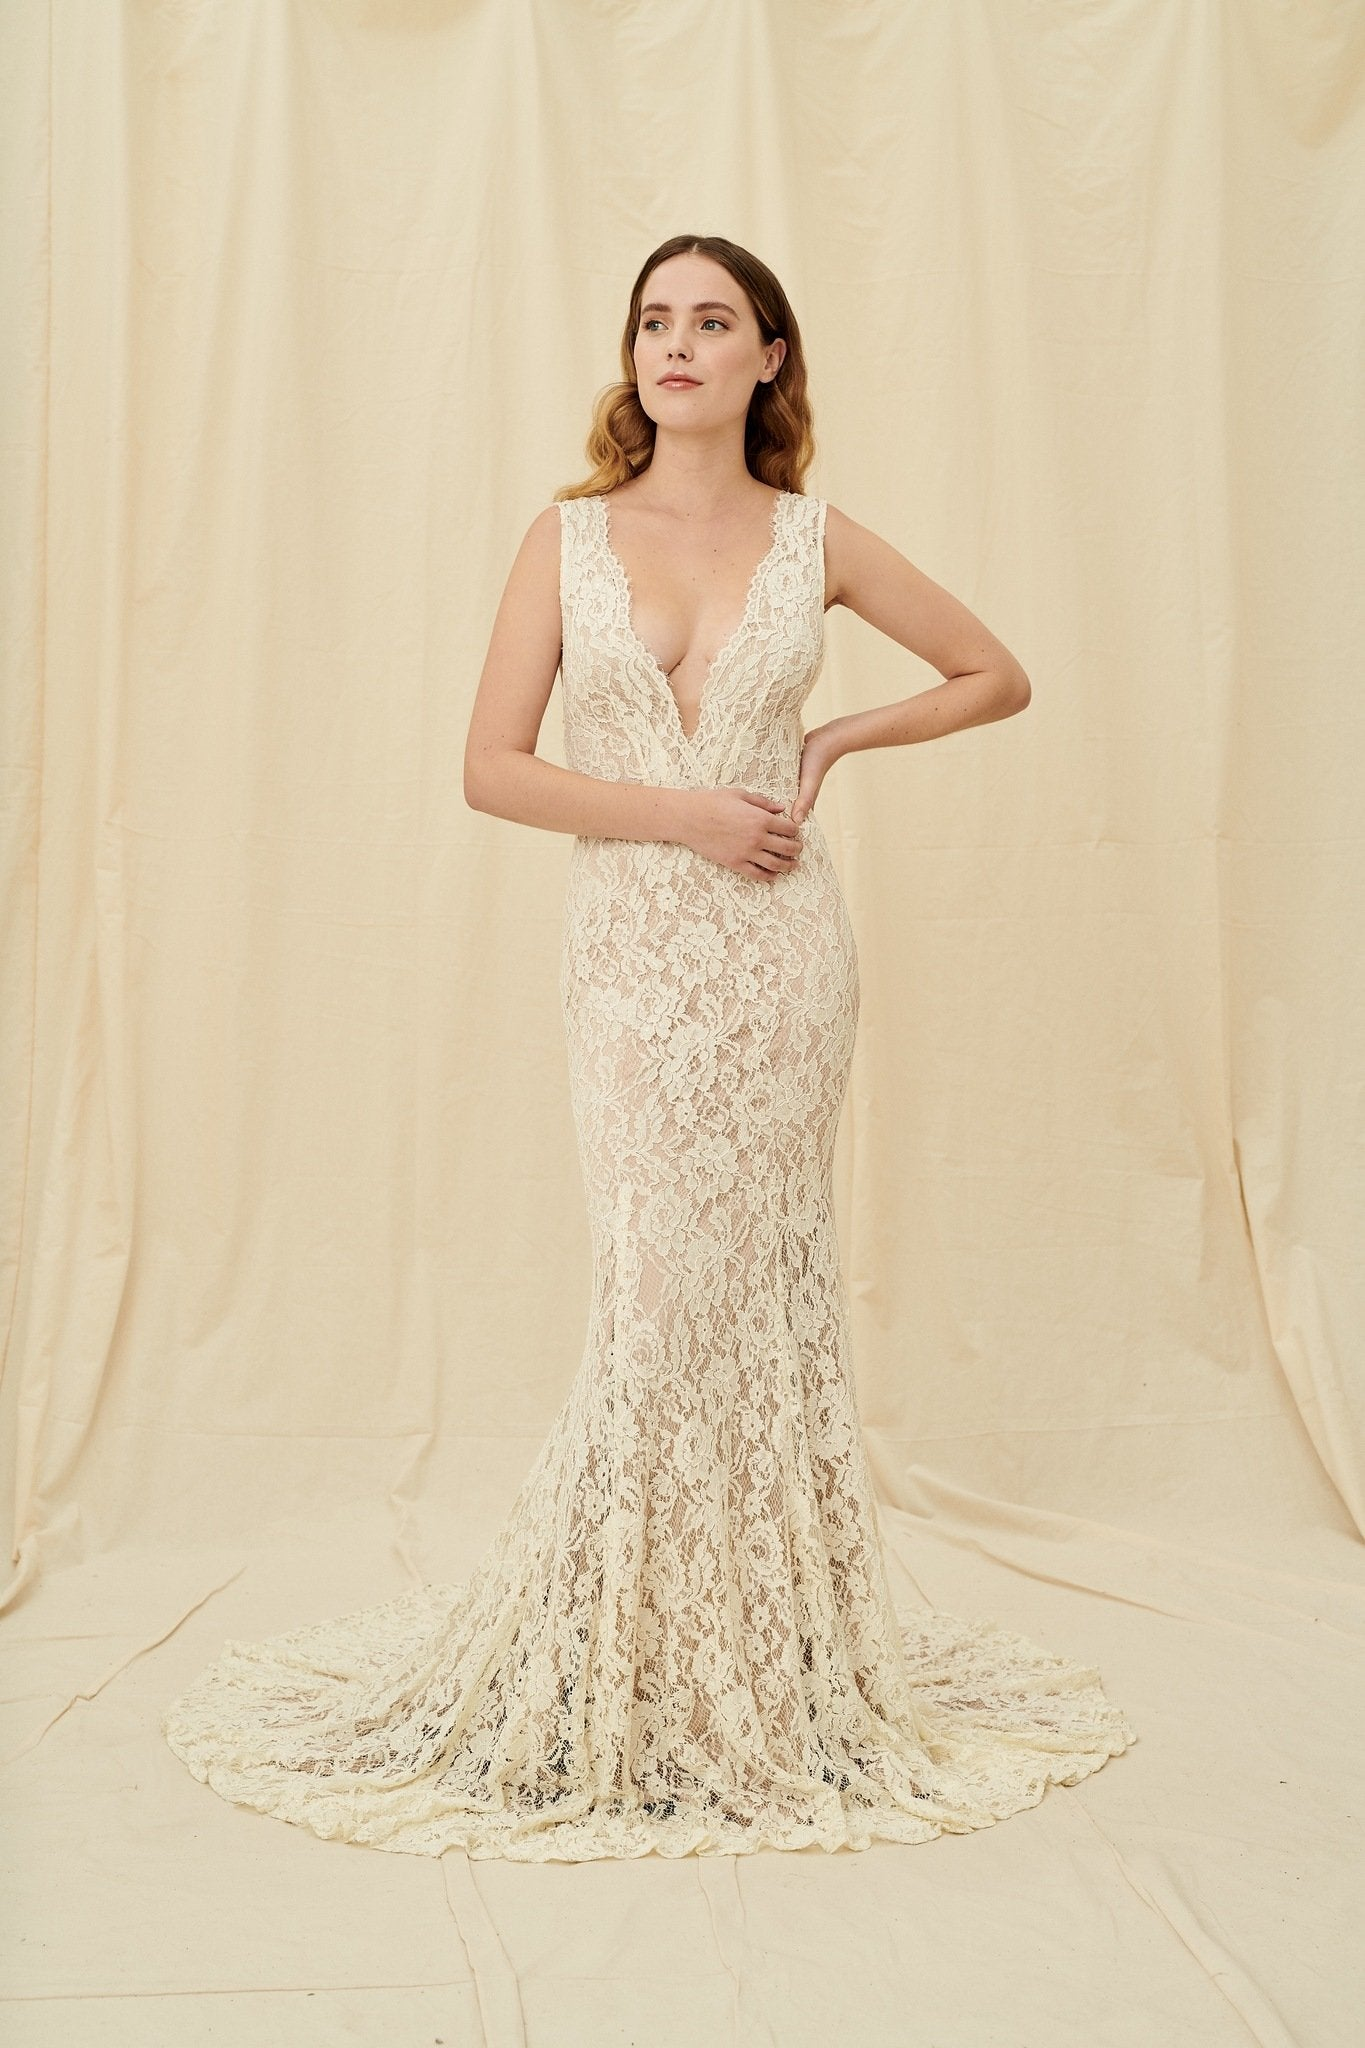 A mocha-toned, vintage-inspired lace gown with a low back and a train